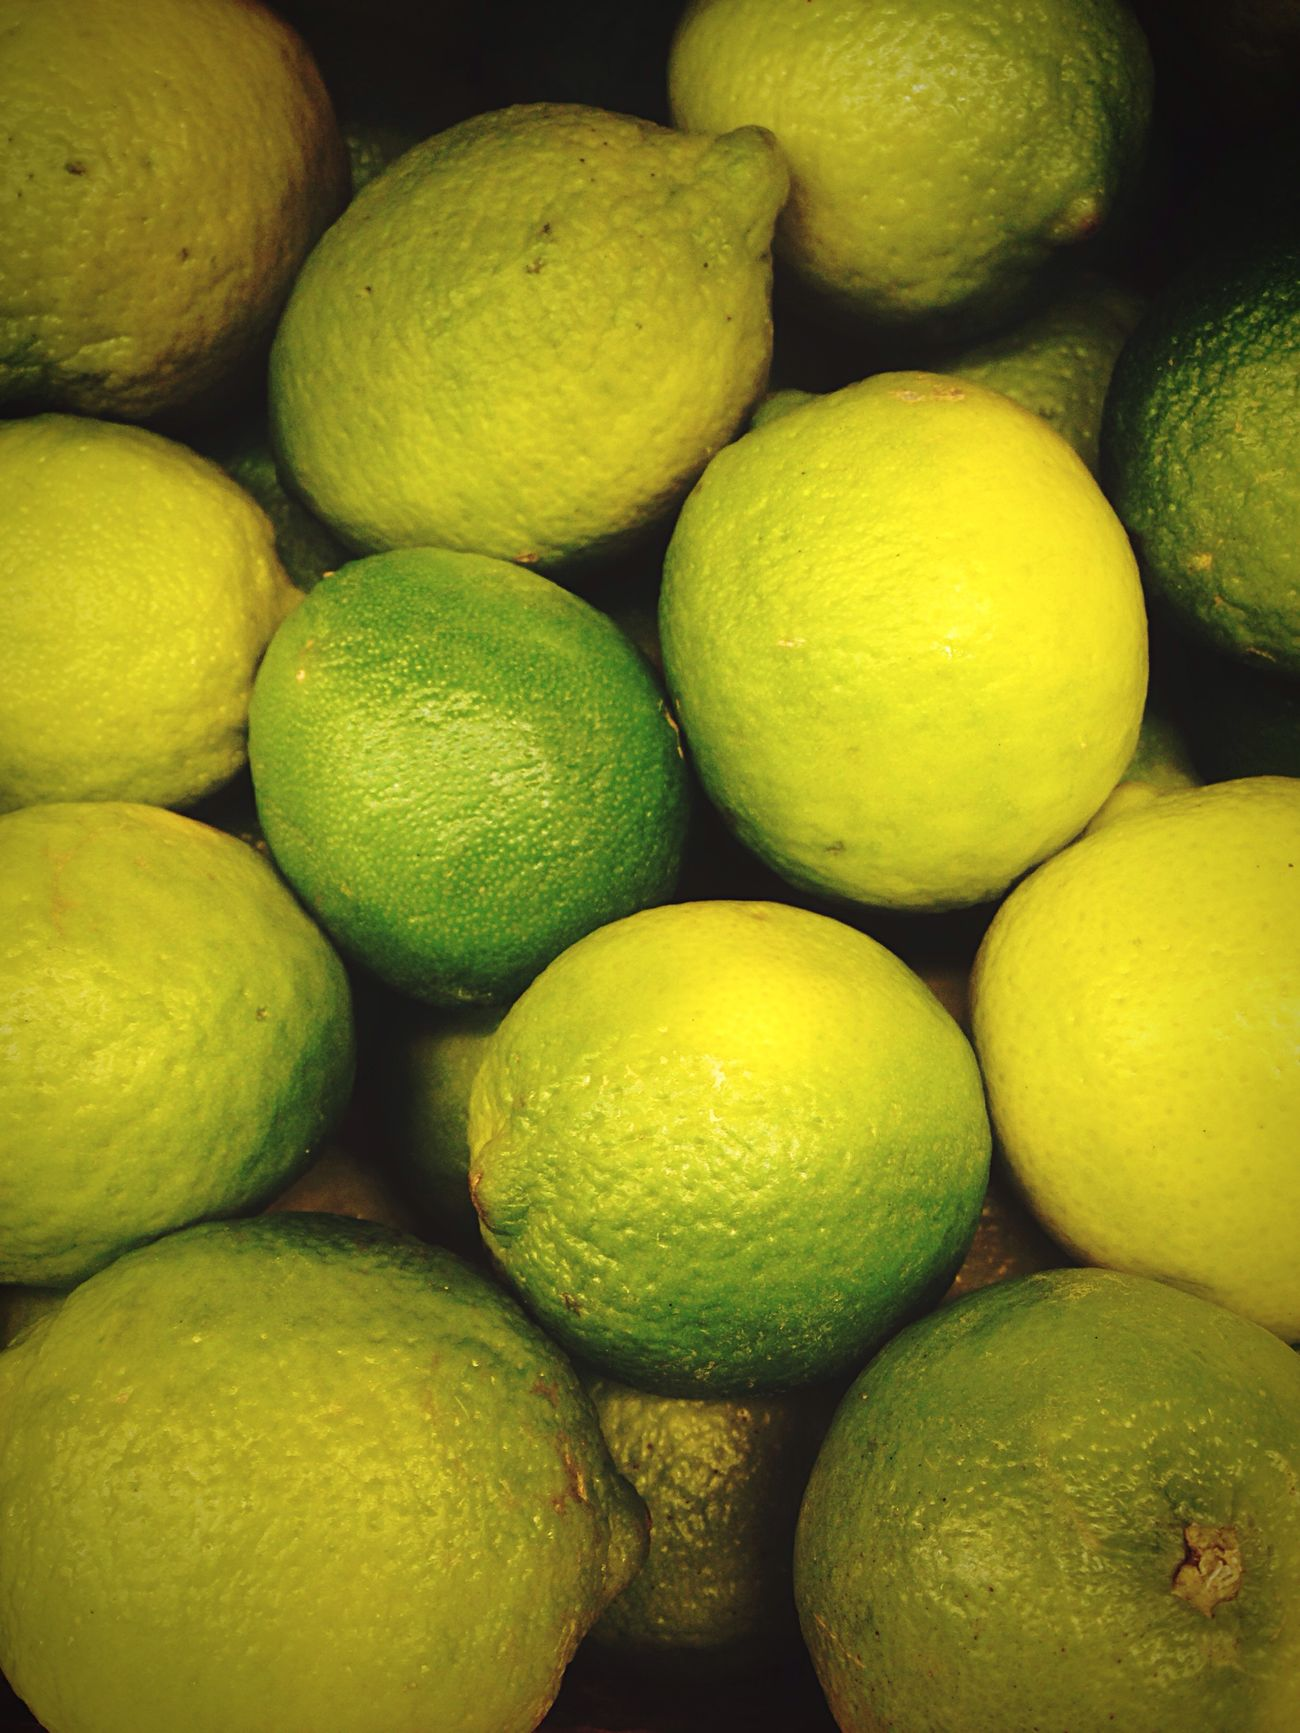 The skin 💚 Freshness Food Healthy Eating Citrus Fruit Lemon Lime Market Stall Street Photography Iphoneonly Vscocam Minimalism_world Moscow Minimalism_masters хамовники усачевка (null)Mobilephotography Fruitporn VSCO Vscorussia Green Color Greenery Photooftheday Colour Of Life Color Explosion